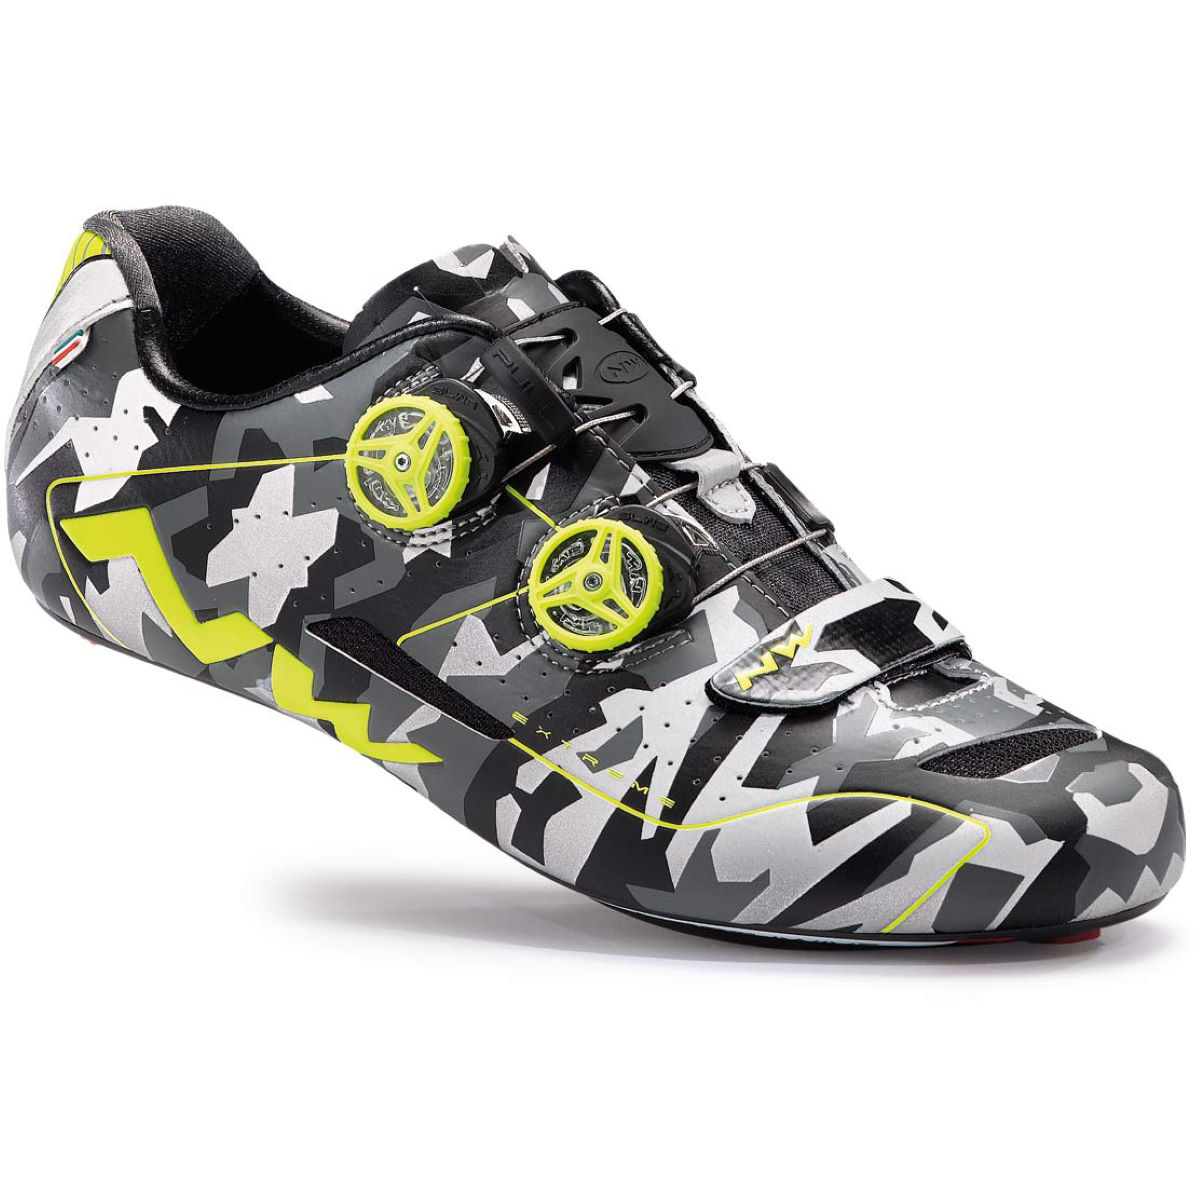 Chaussures de route Northwave Extreme Reflective - 44